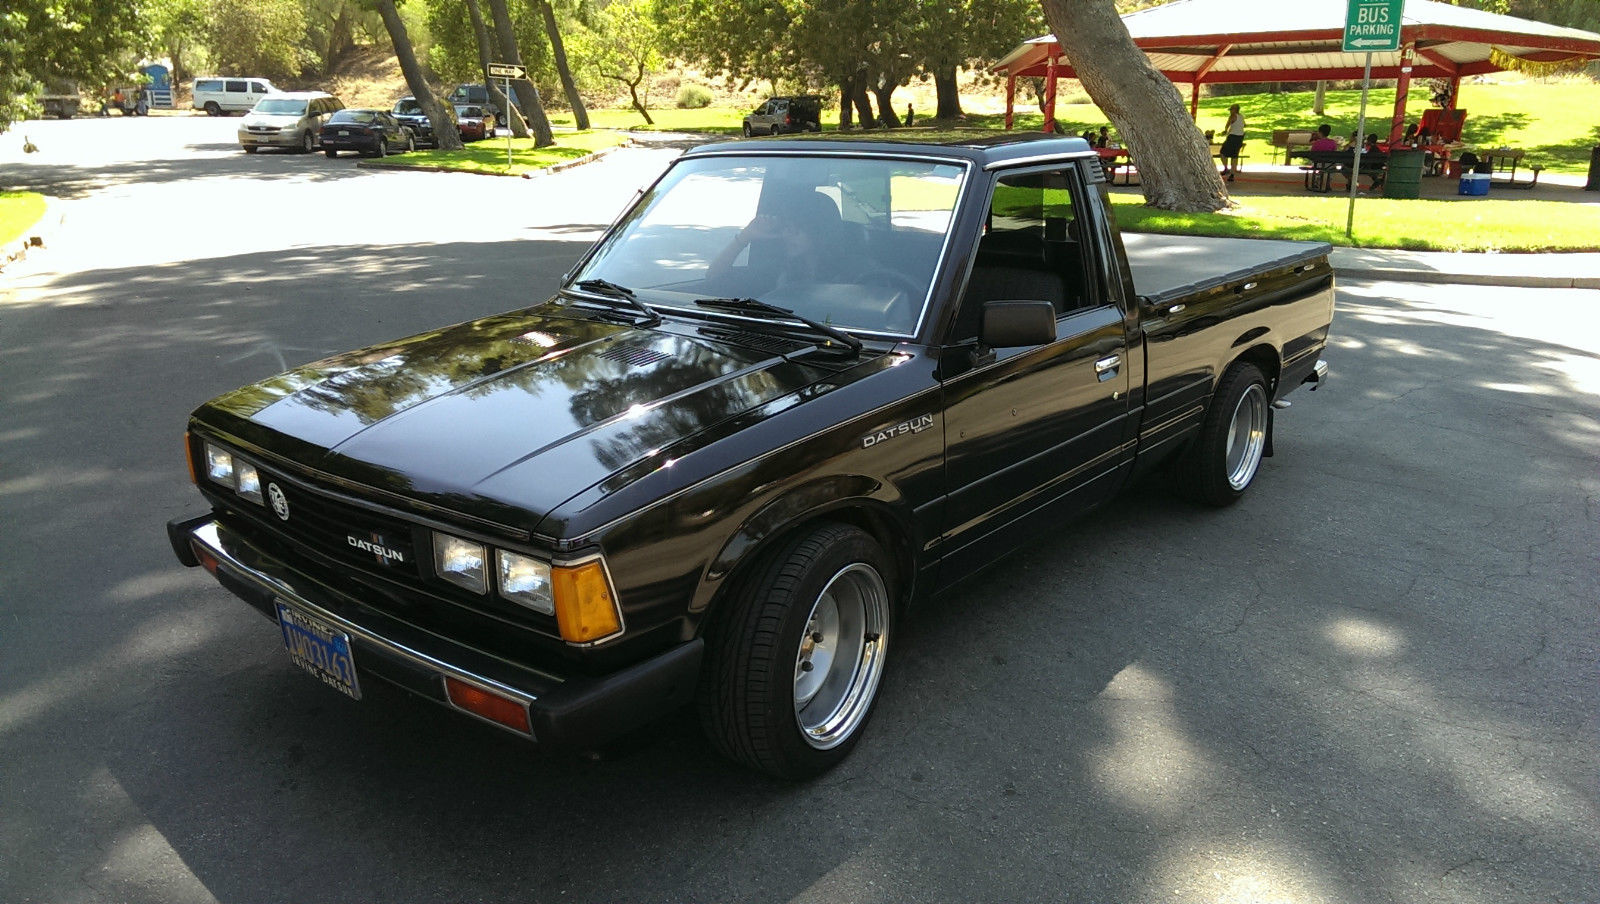 Cars For Sale By Owner In Bakersfield Ca >> Original 1980 Datsun 720 Pickup mini truck madness!